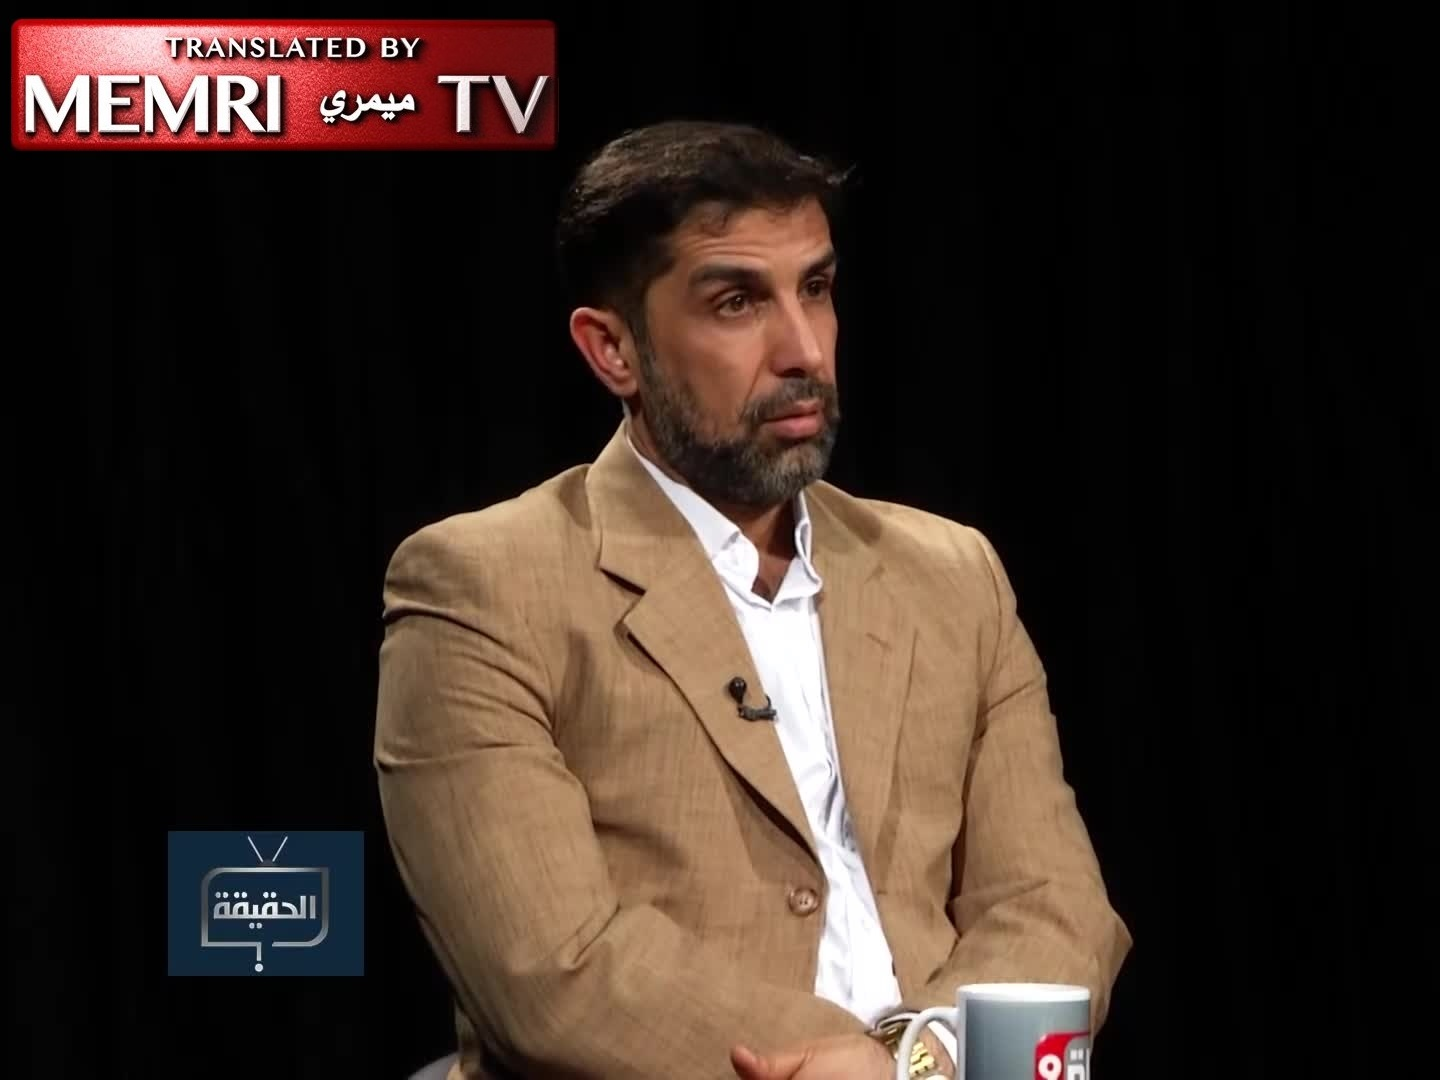 Iraqi Political Commentator Ali Al-Shamari: Iraqi Regime Left Us No Choice But to Support ISIS